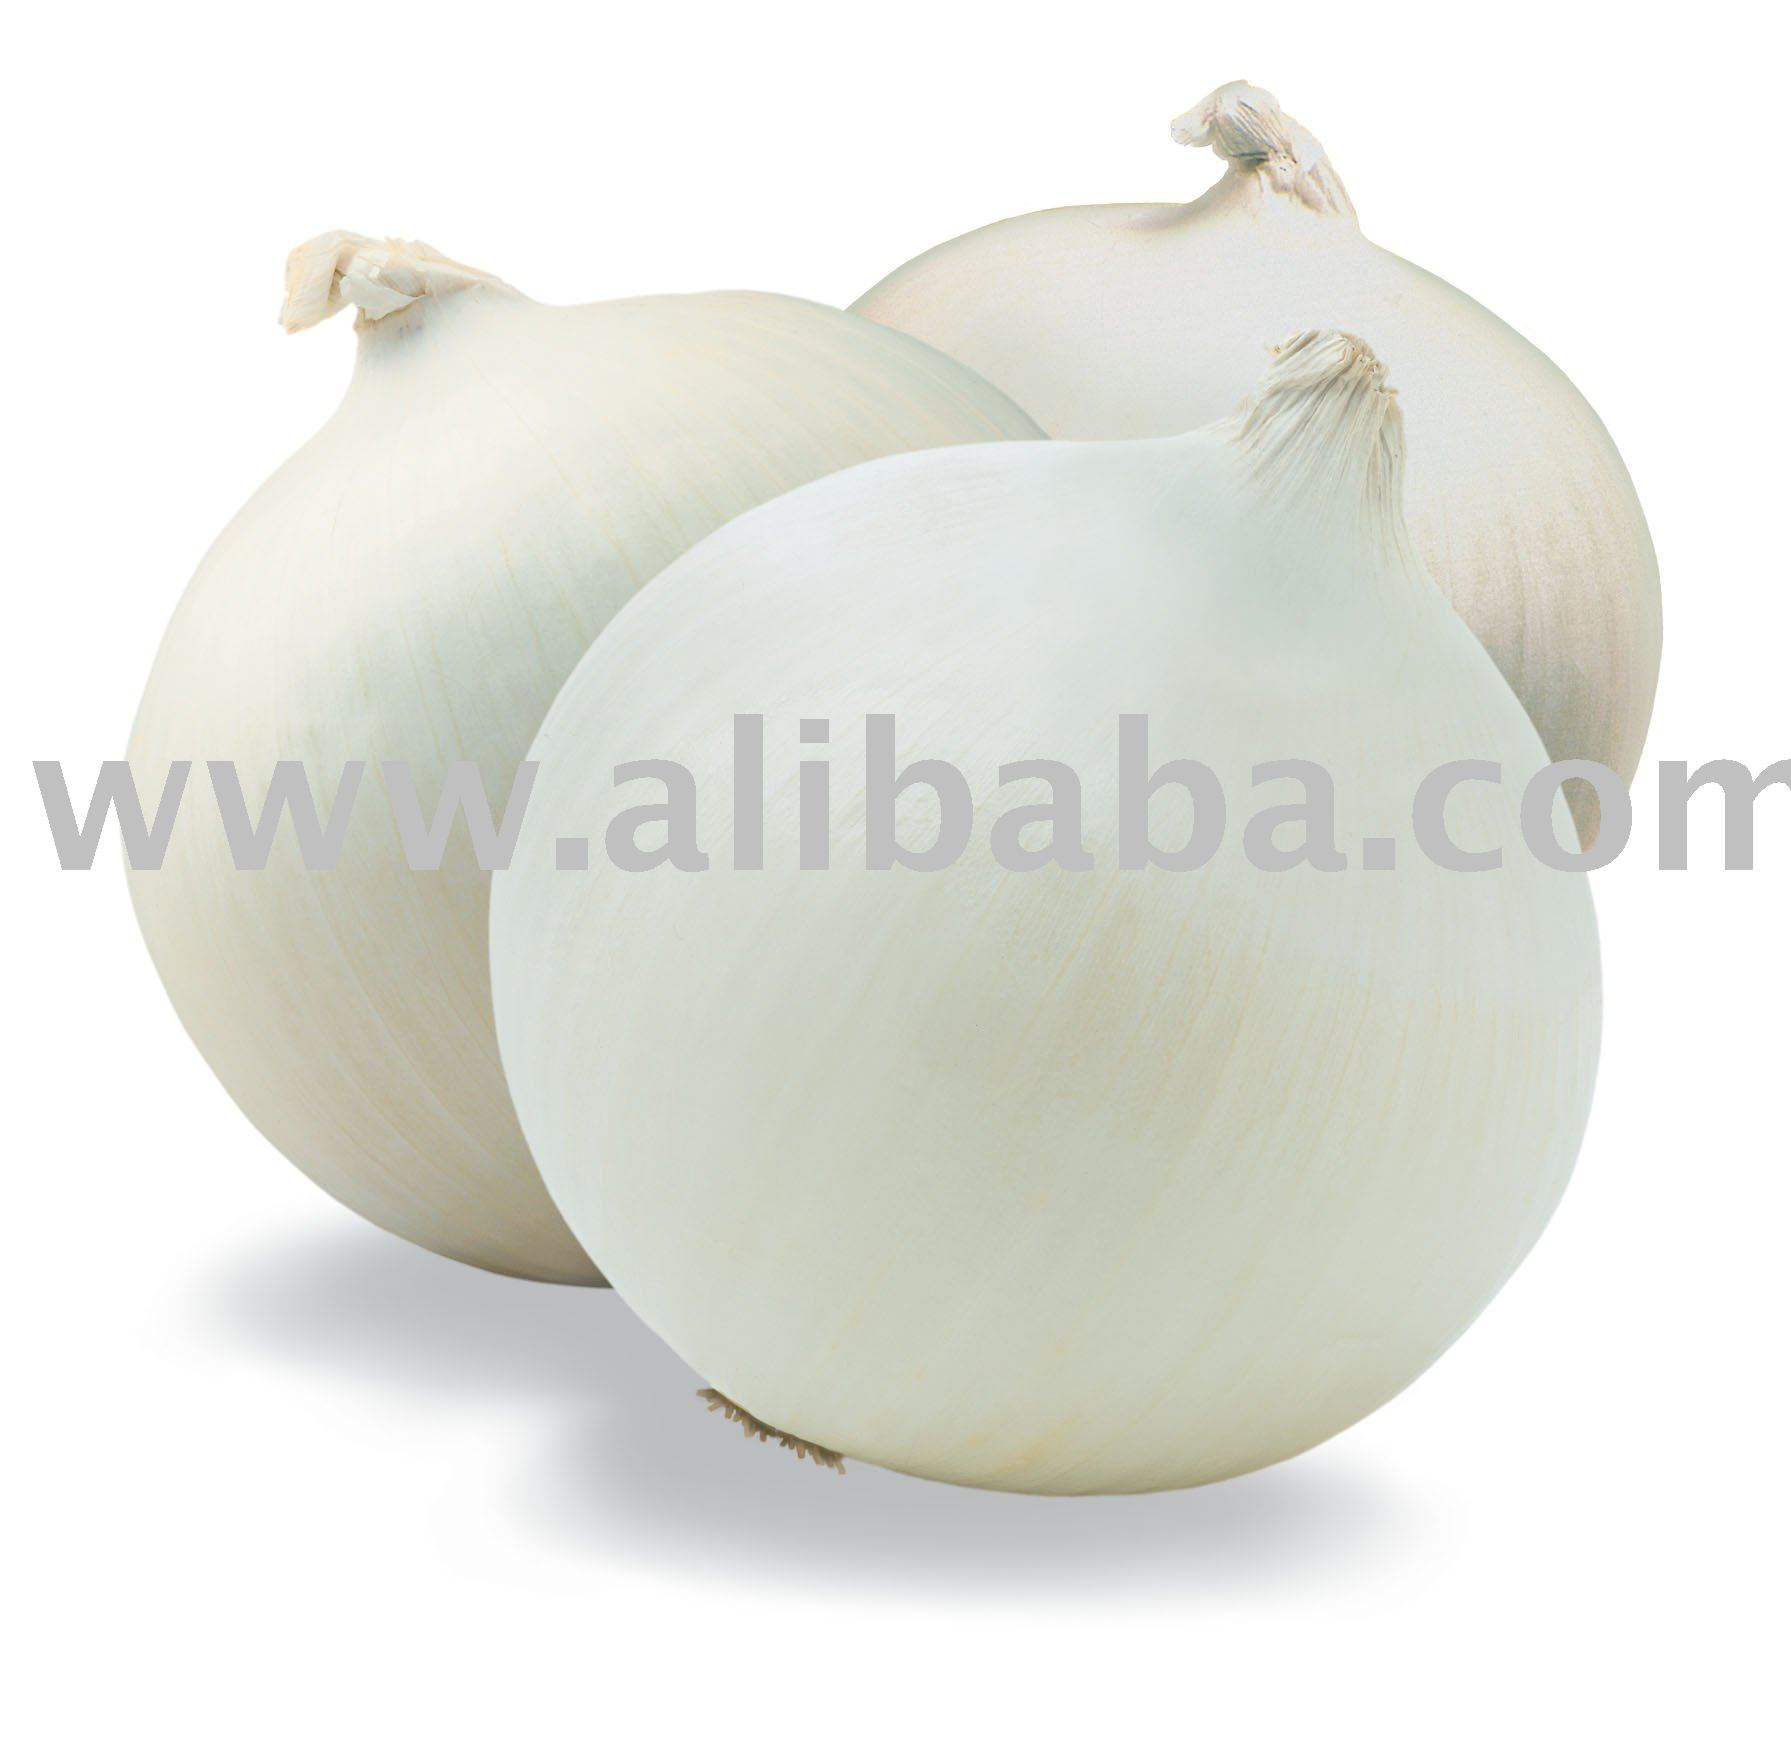 All Types Of Onions